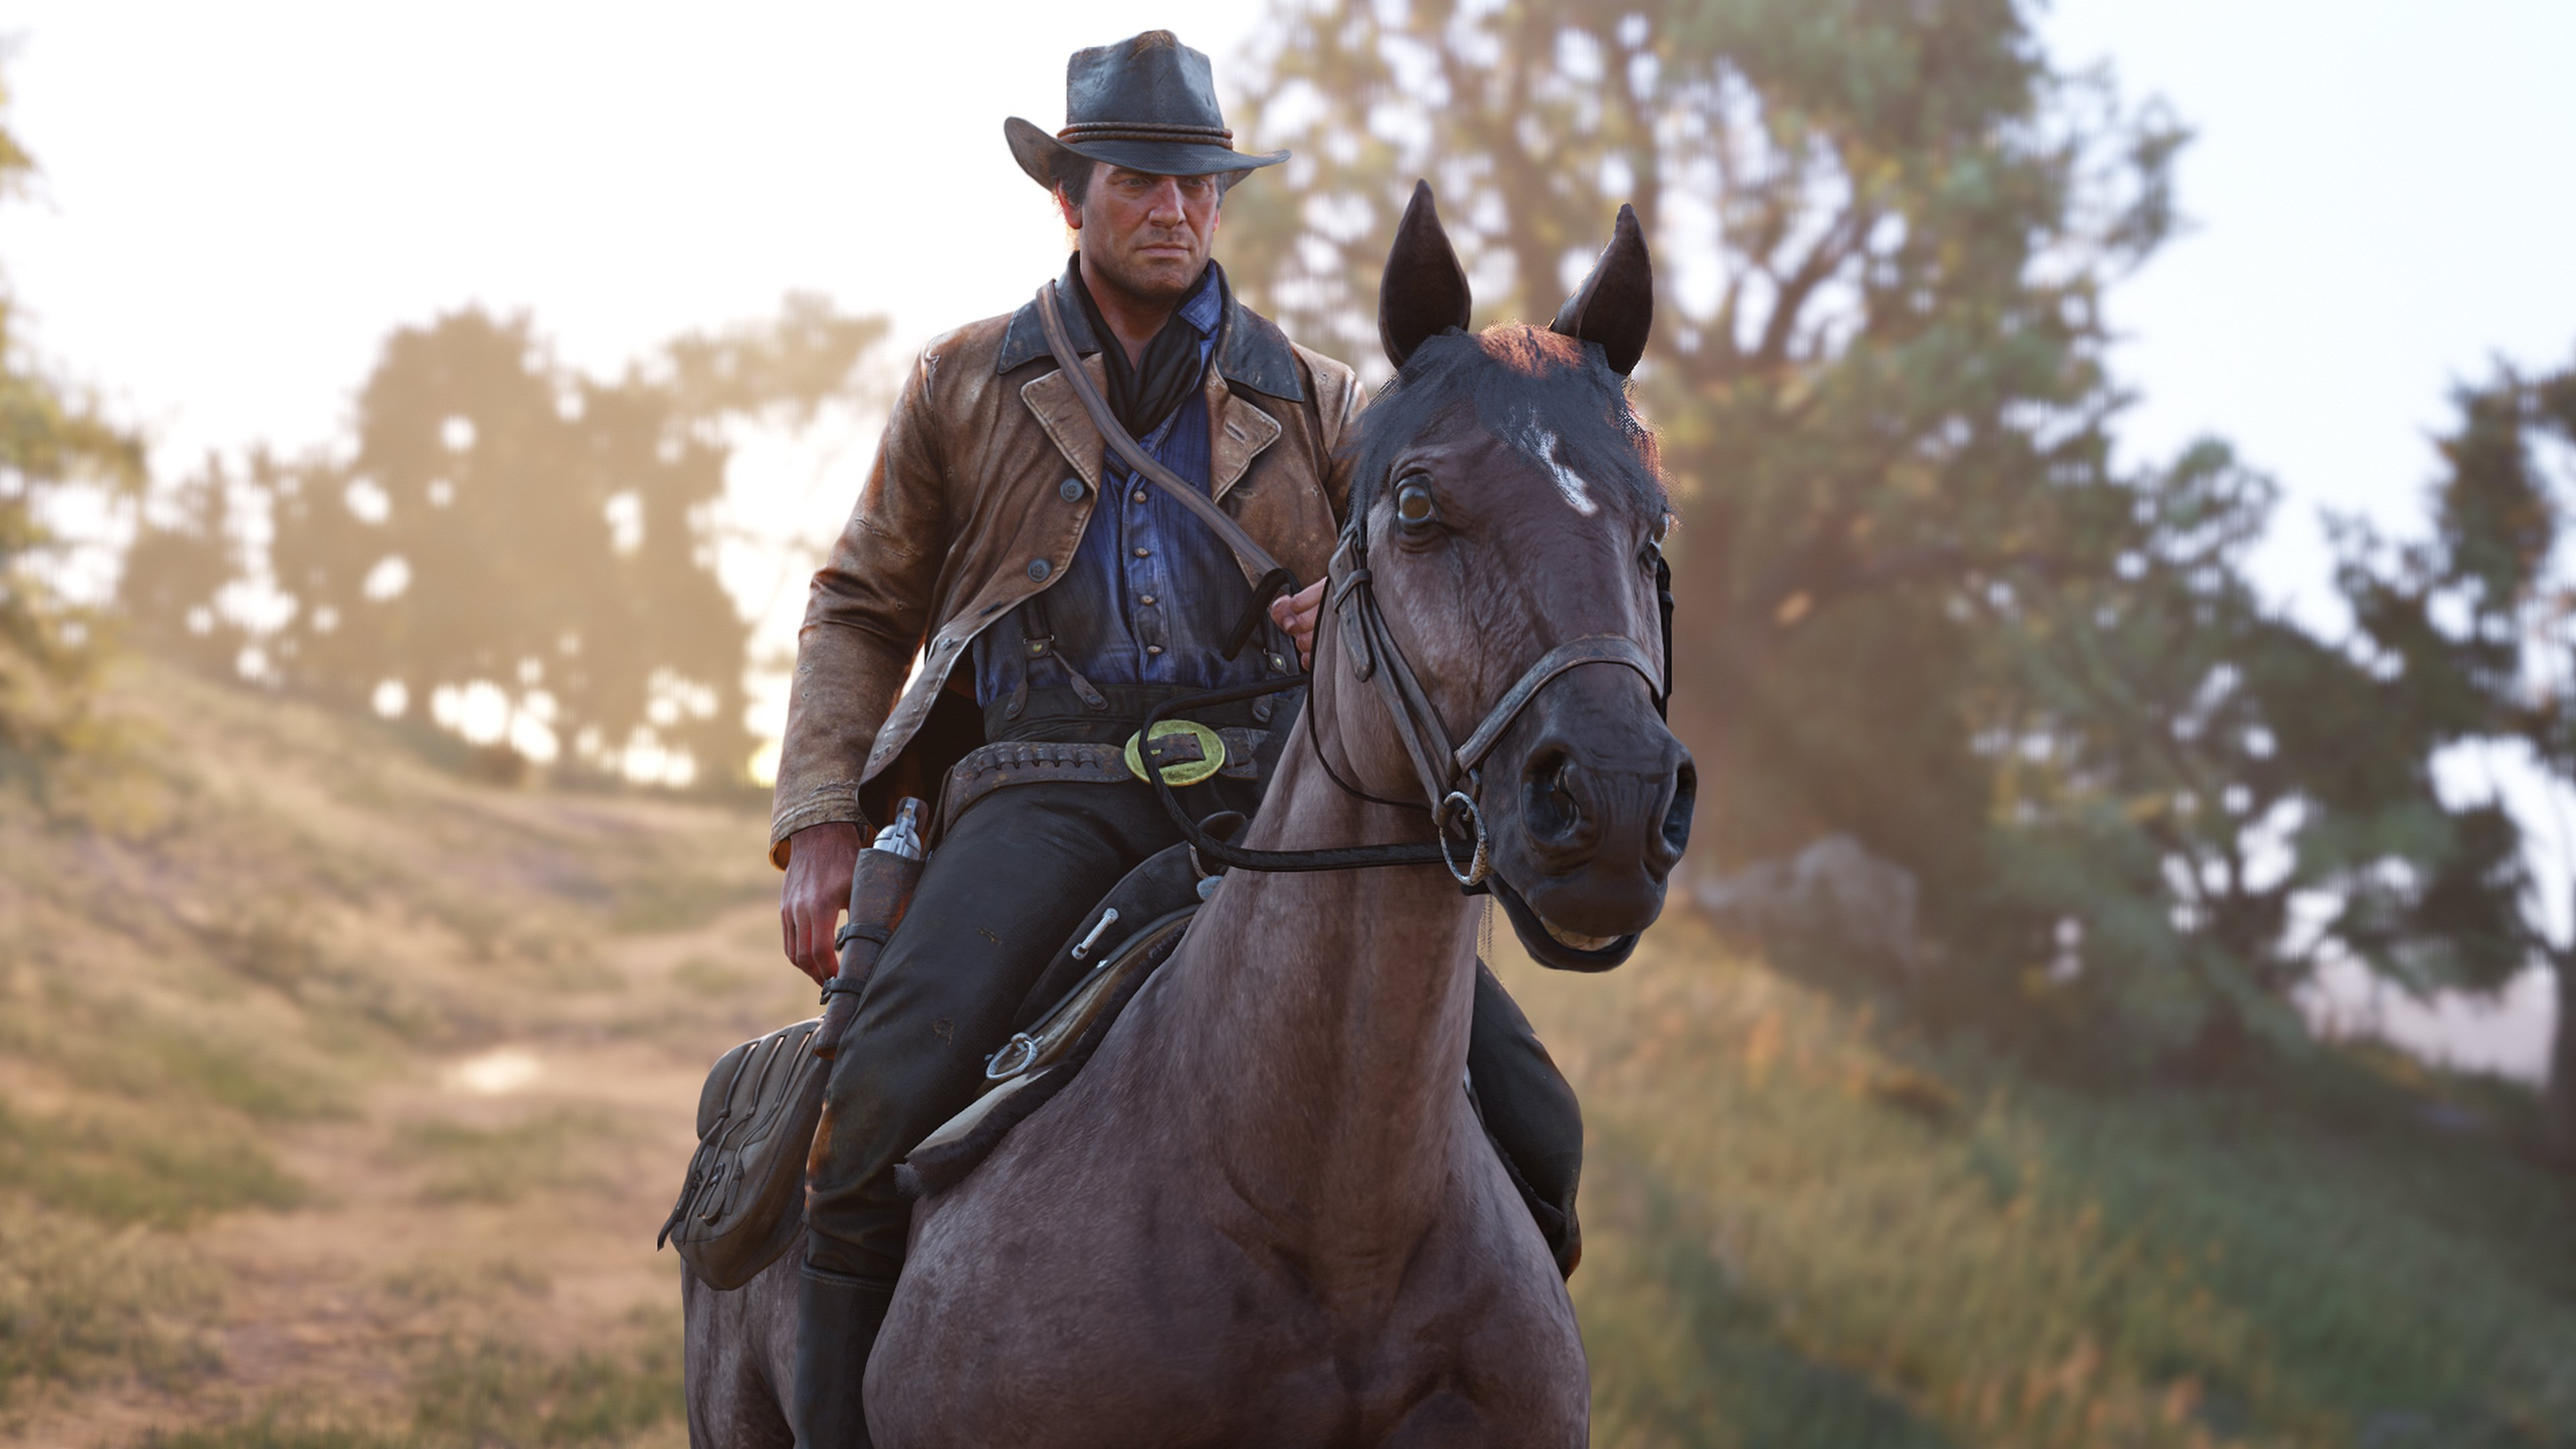 'Red Dead Redemption 2' we've got tips and advice to help you